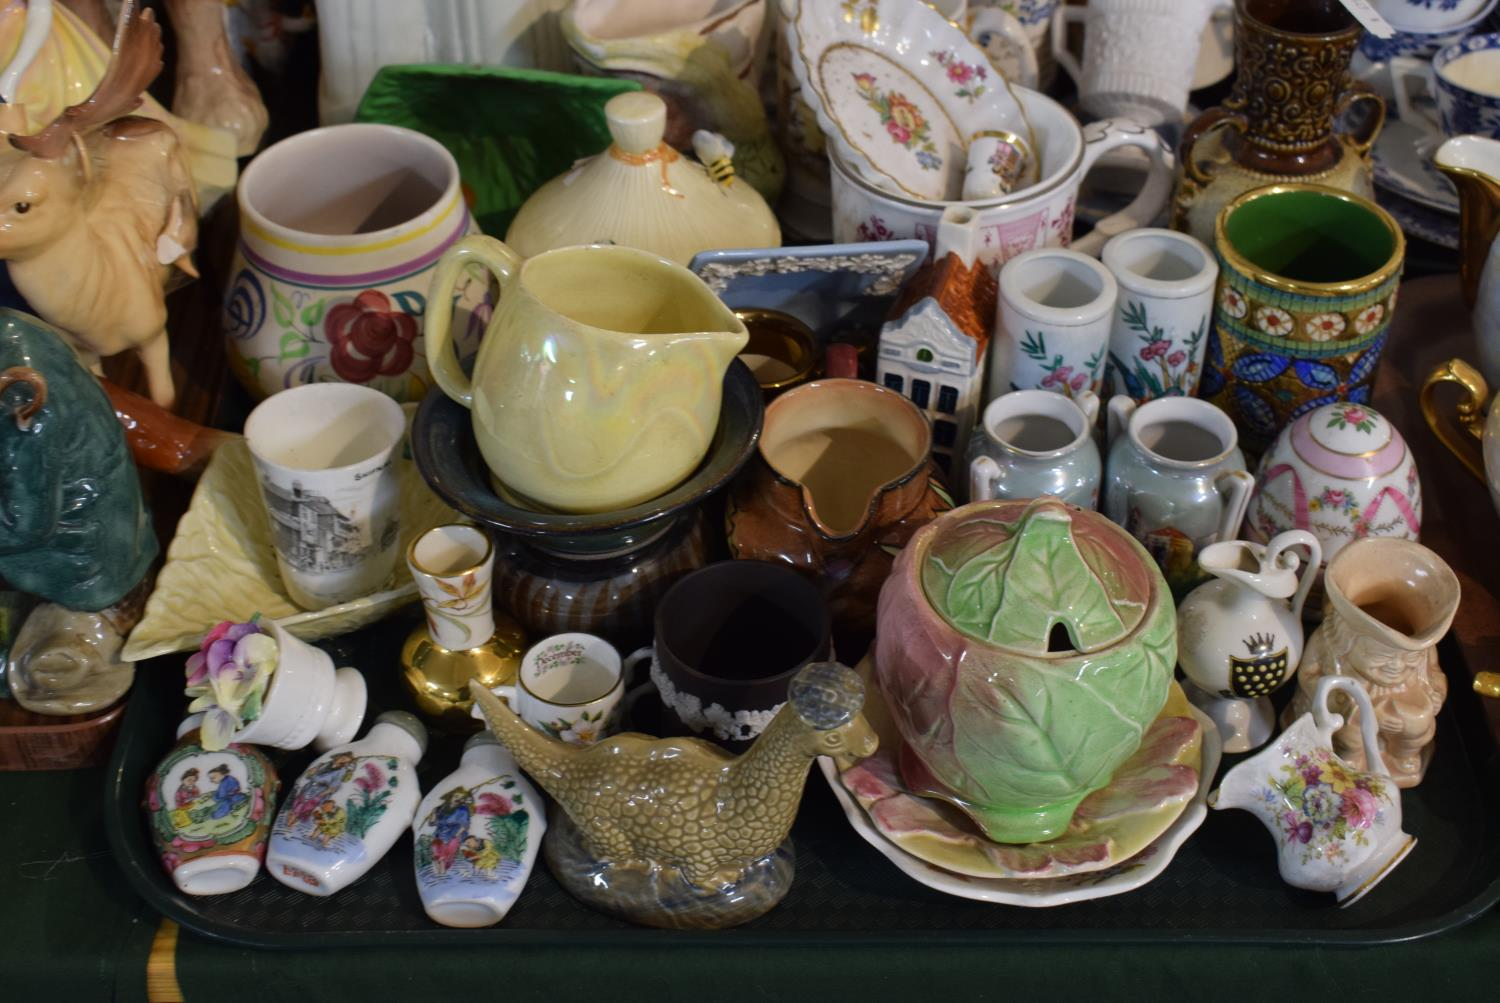 Lot 198 - A Tray of Mixed Ceramics to Include Chinese Snuff Bottles, Miniature Vases and Jugs, Crested Ware,